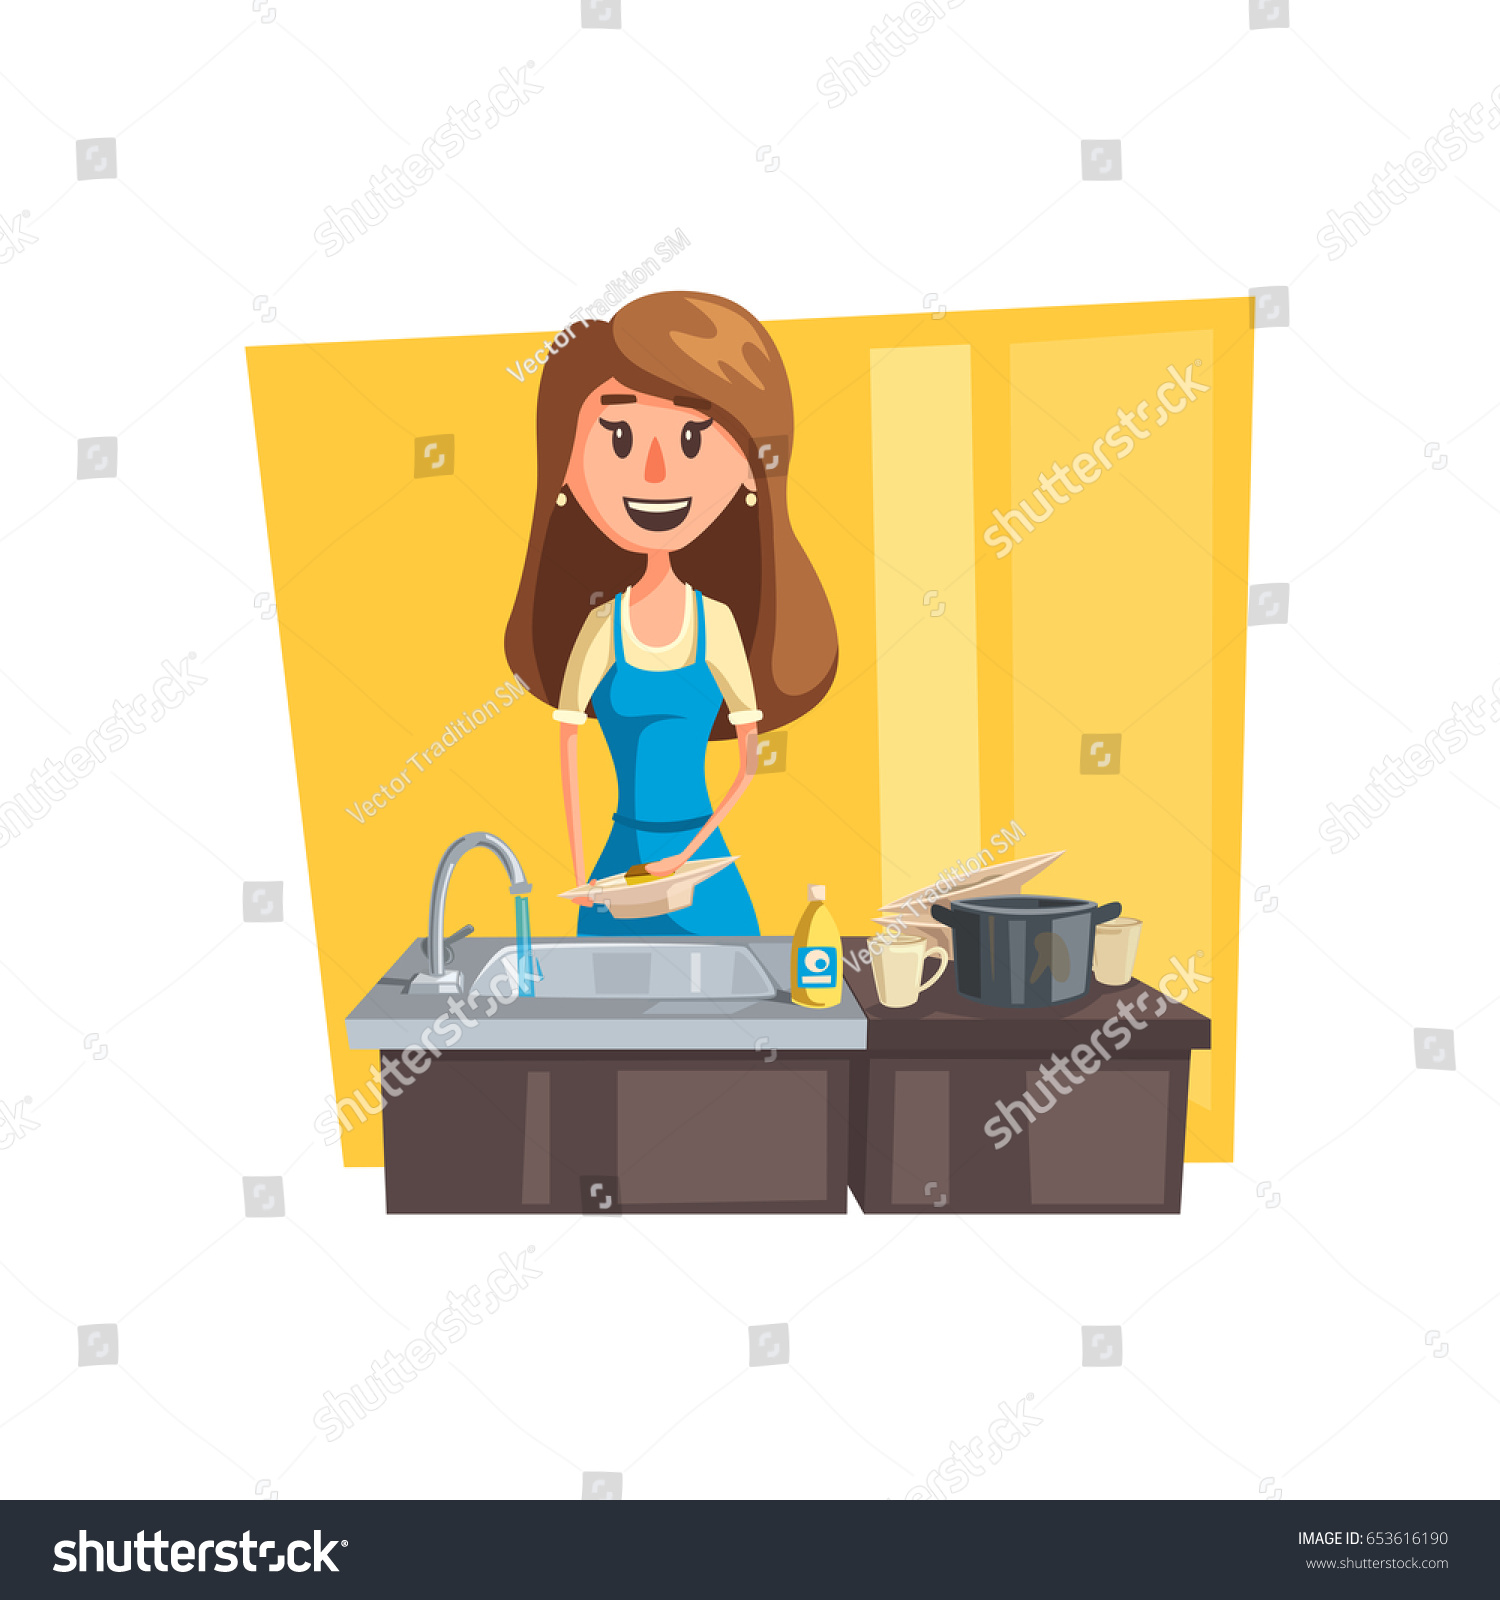 Kitchen Clean Up Cartoon: Washing Dishes Cartoon Icon Woman Housewife Stock Vector